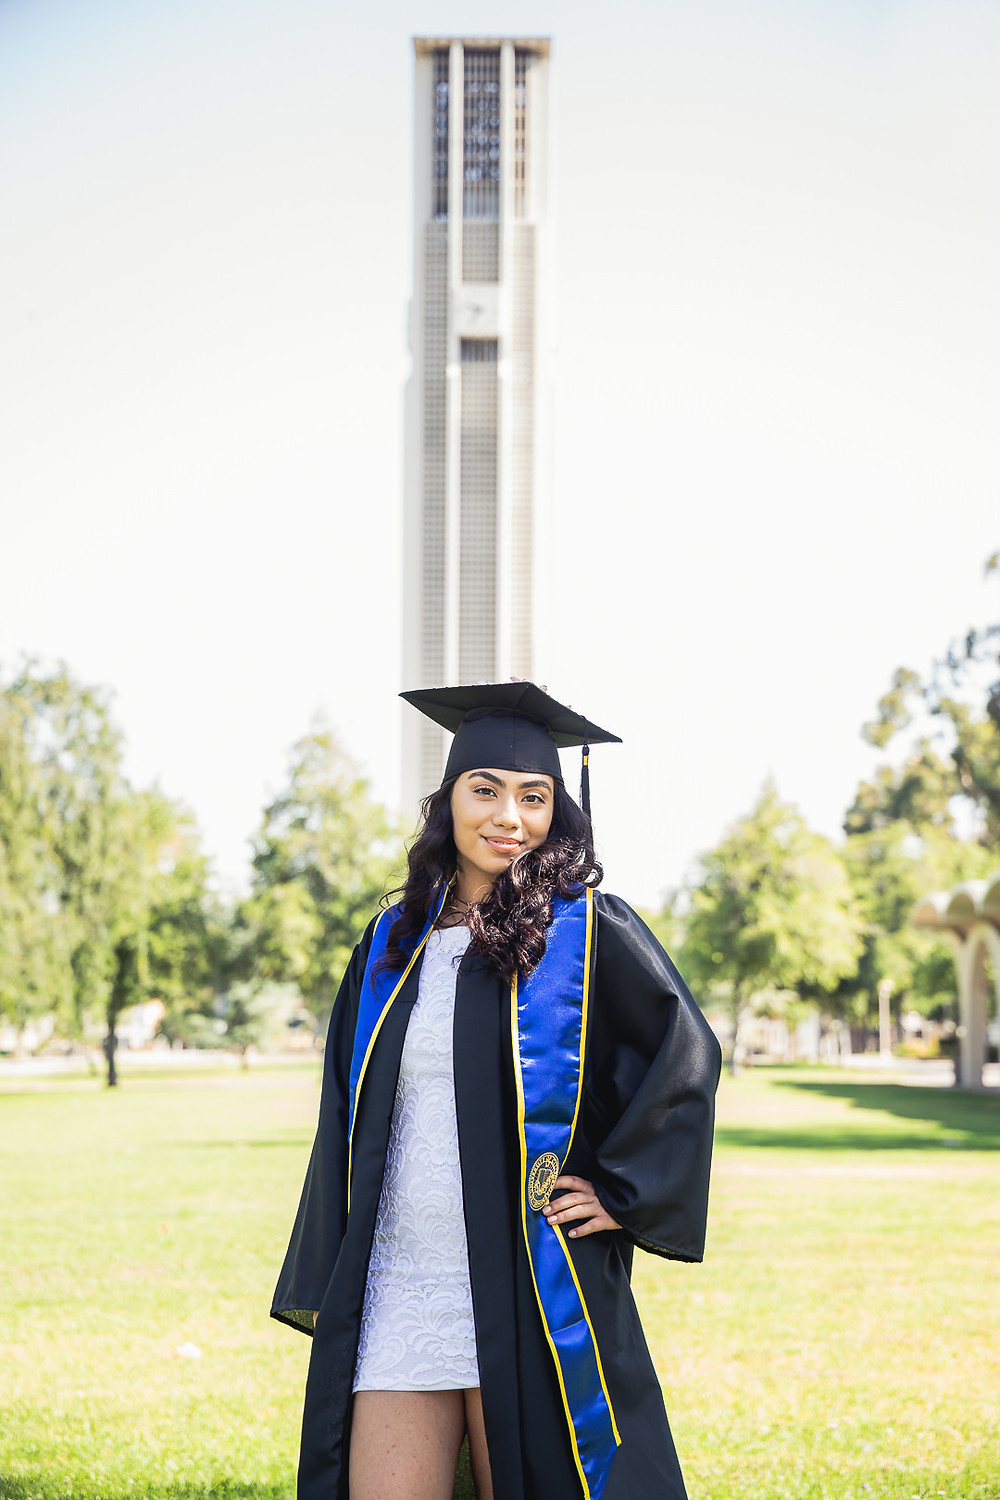 University of California Riverside Graduation Photos | Ashley 8